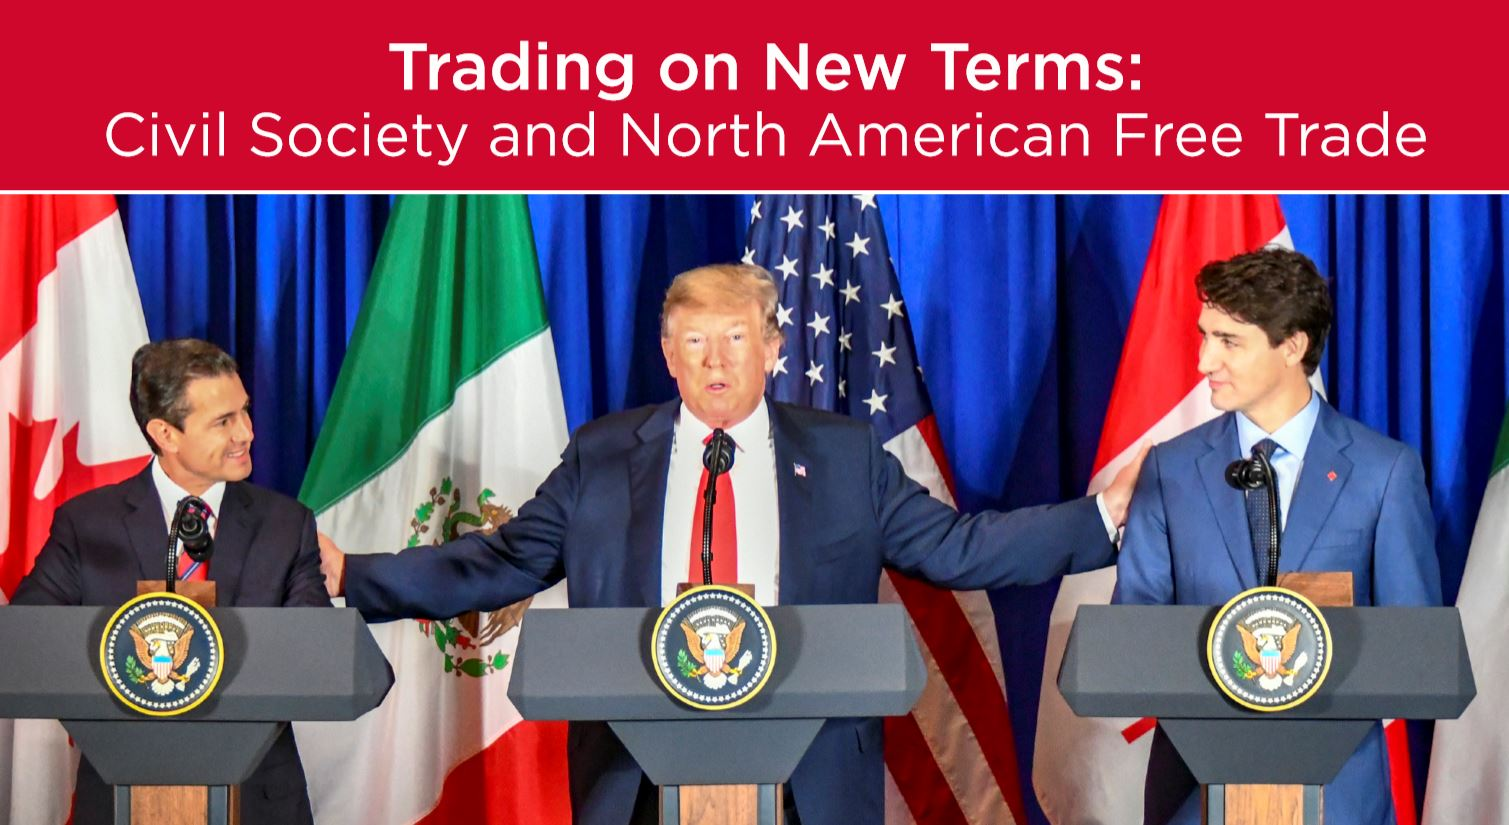 Header: Trading on New Terms: Civil Society and North American Free Trade. Picture: Leaders of Mexico, USA and Canada at podiums following the signing of new trade agreement.